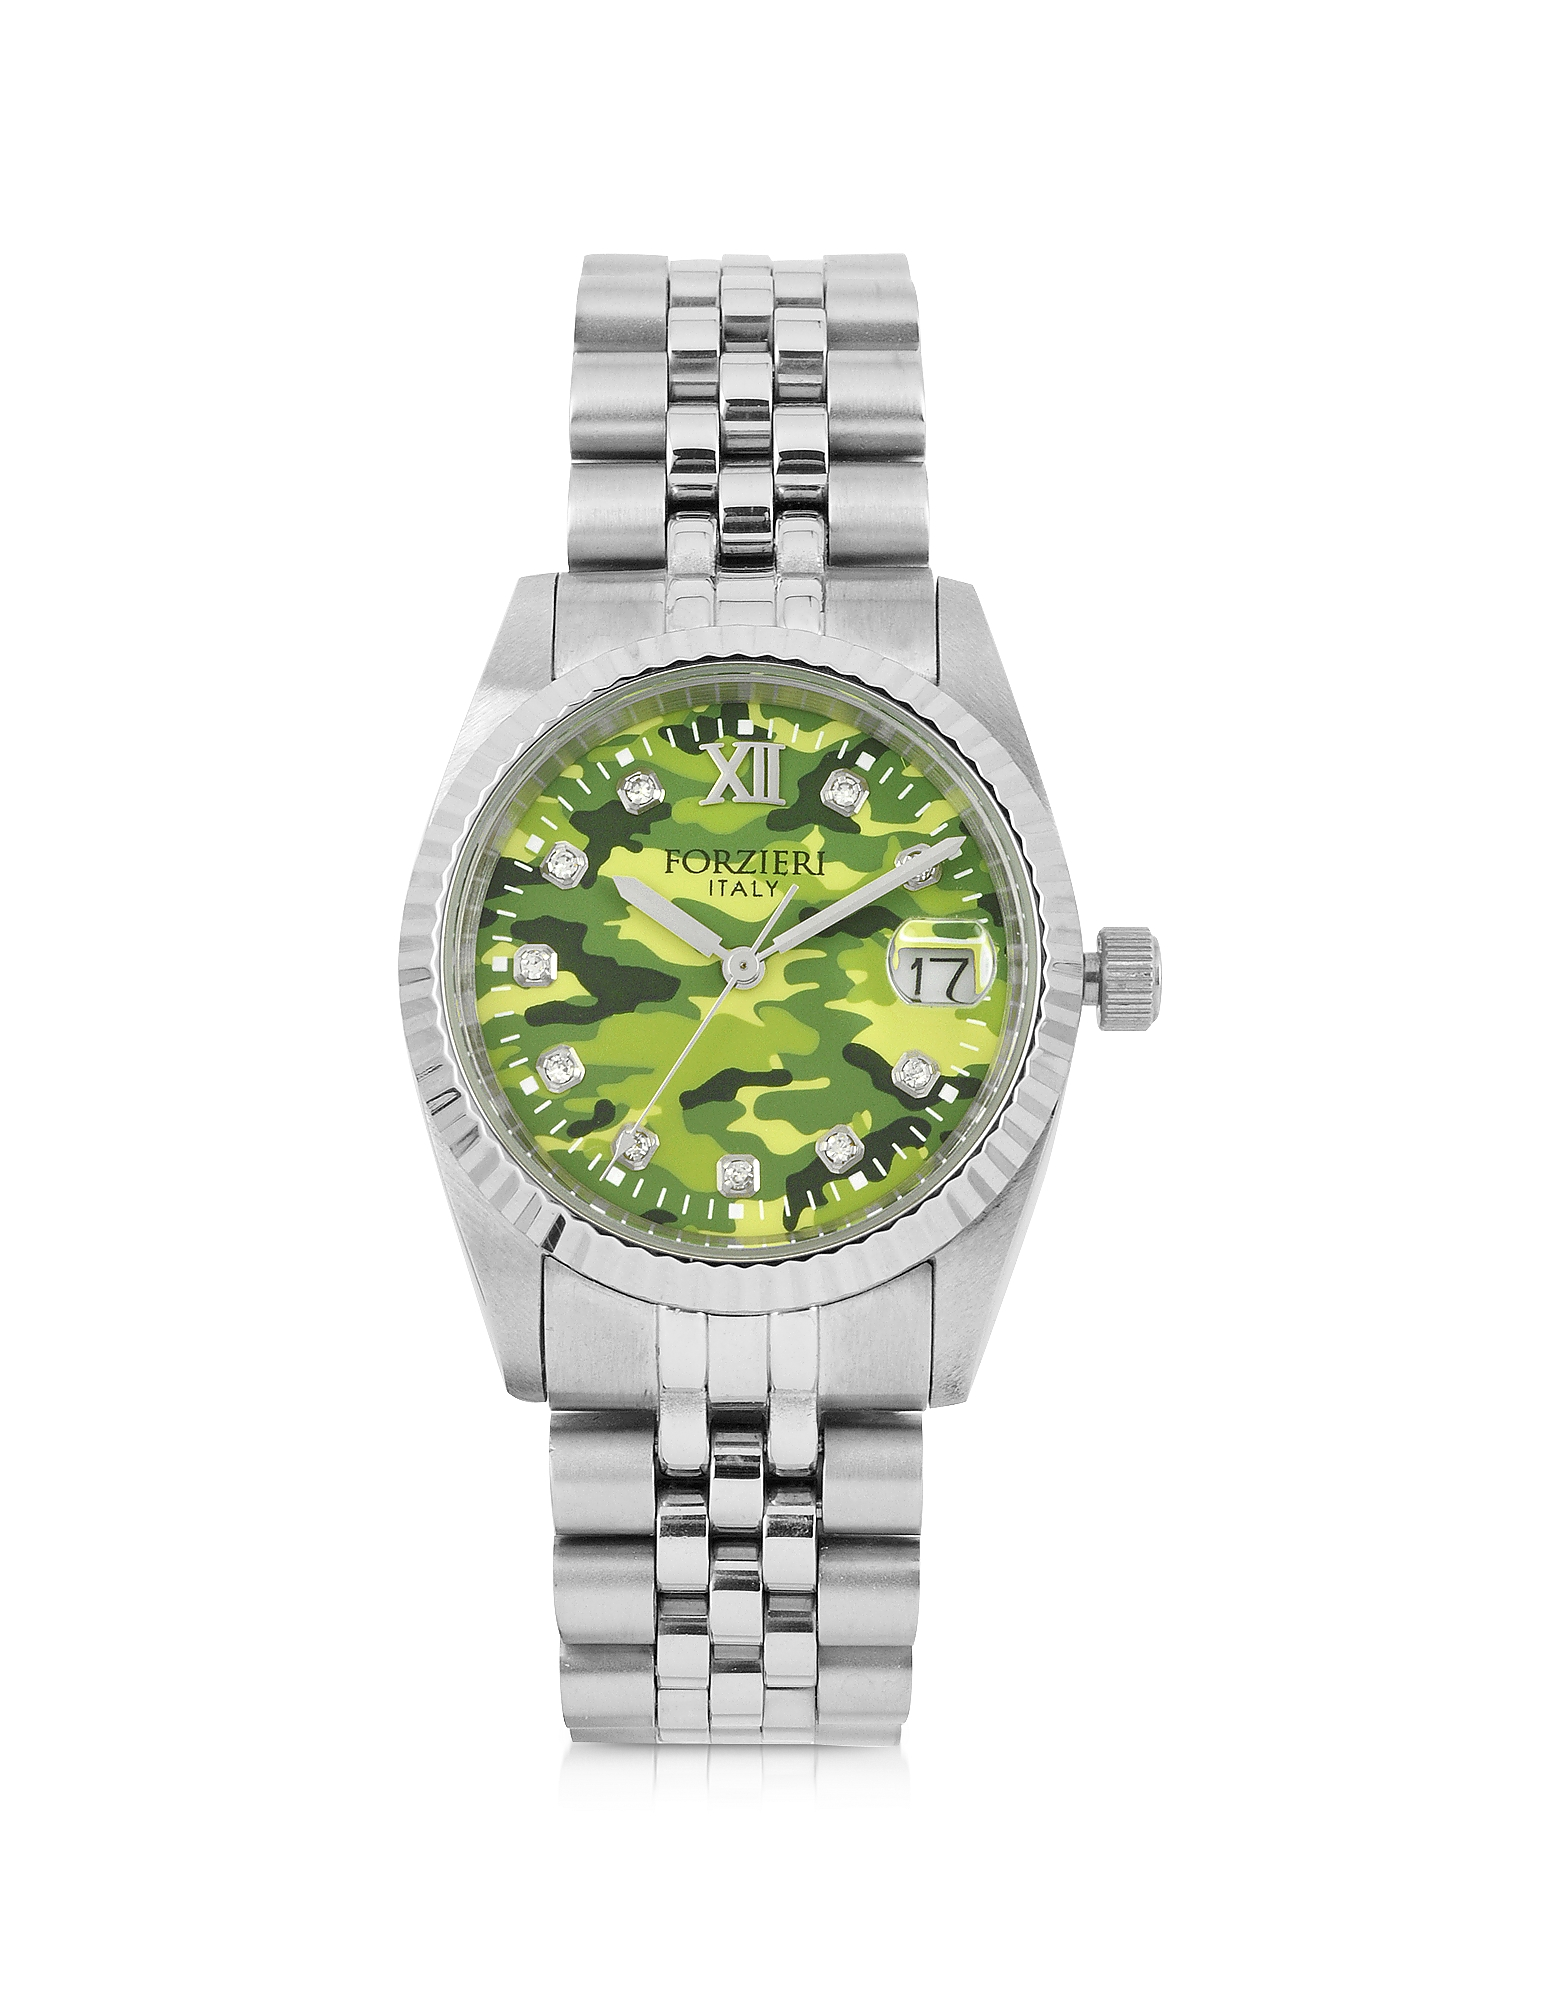 Forzieri Women's Watches, Trevi Silver Tone Stainless Steel Women's Watch w/Green Camo Dial